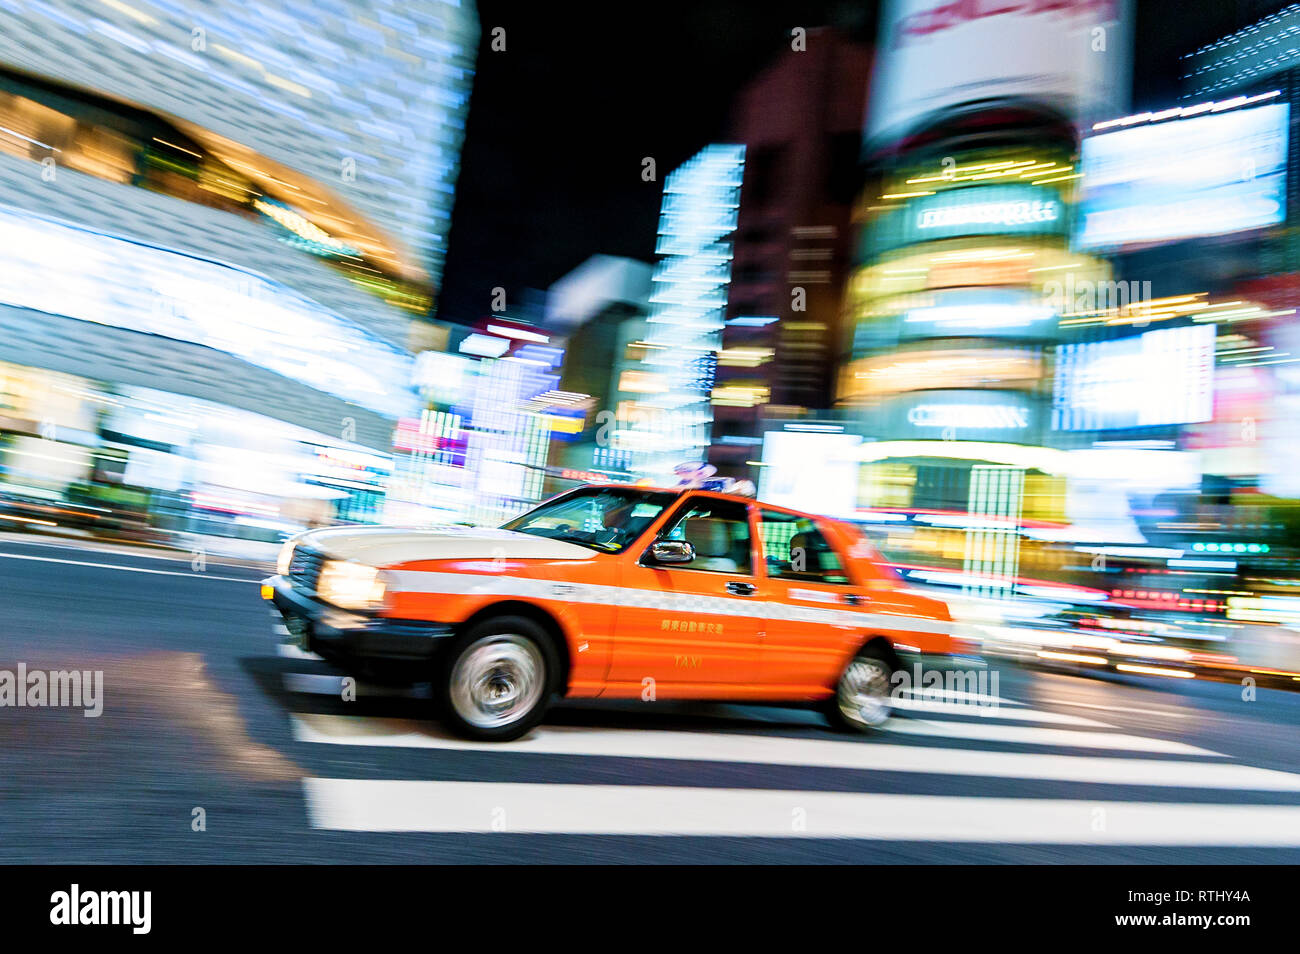 Taxi Tokyo Ginza Crossing Japan - Stock Image